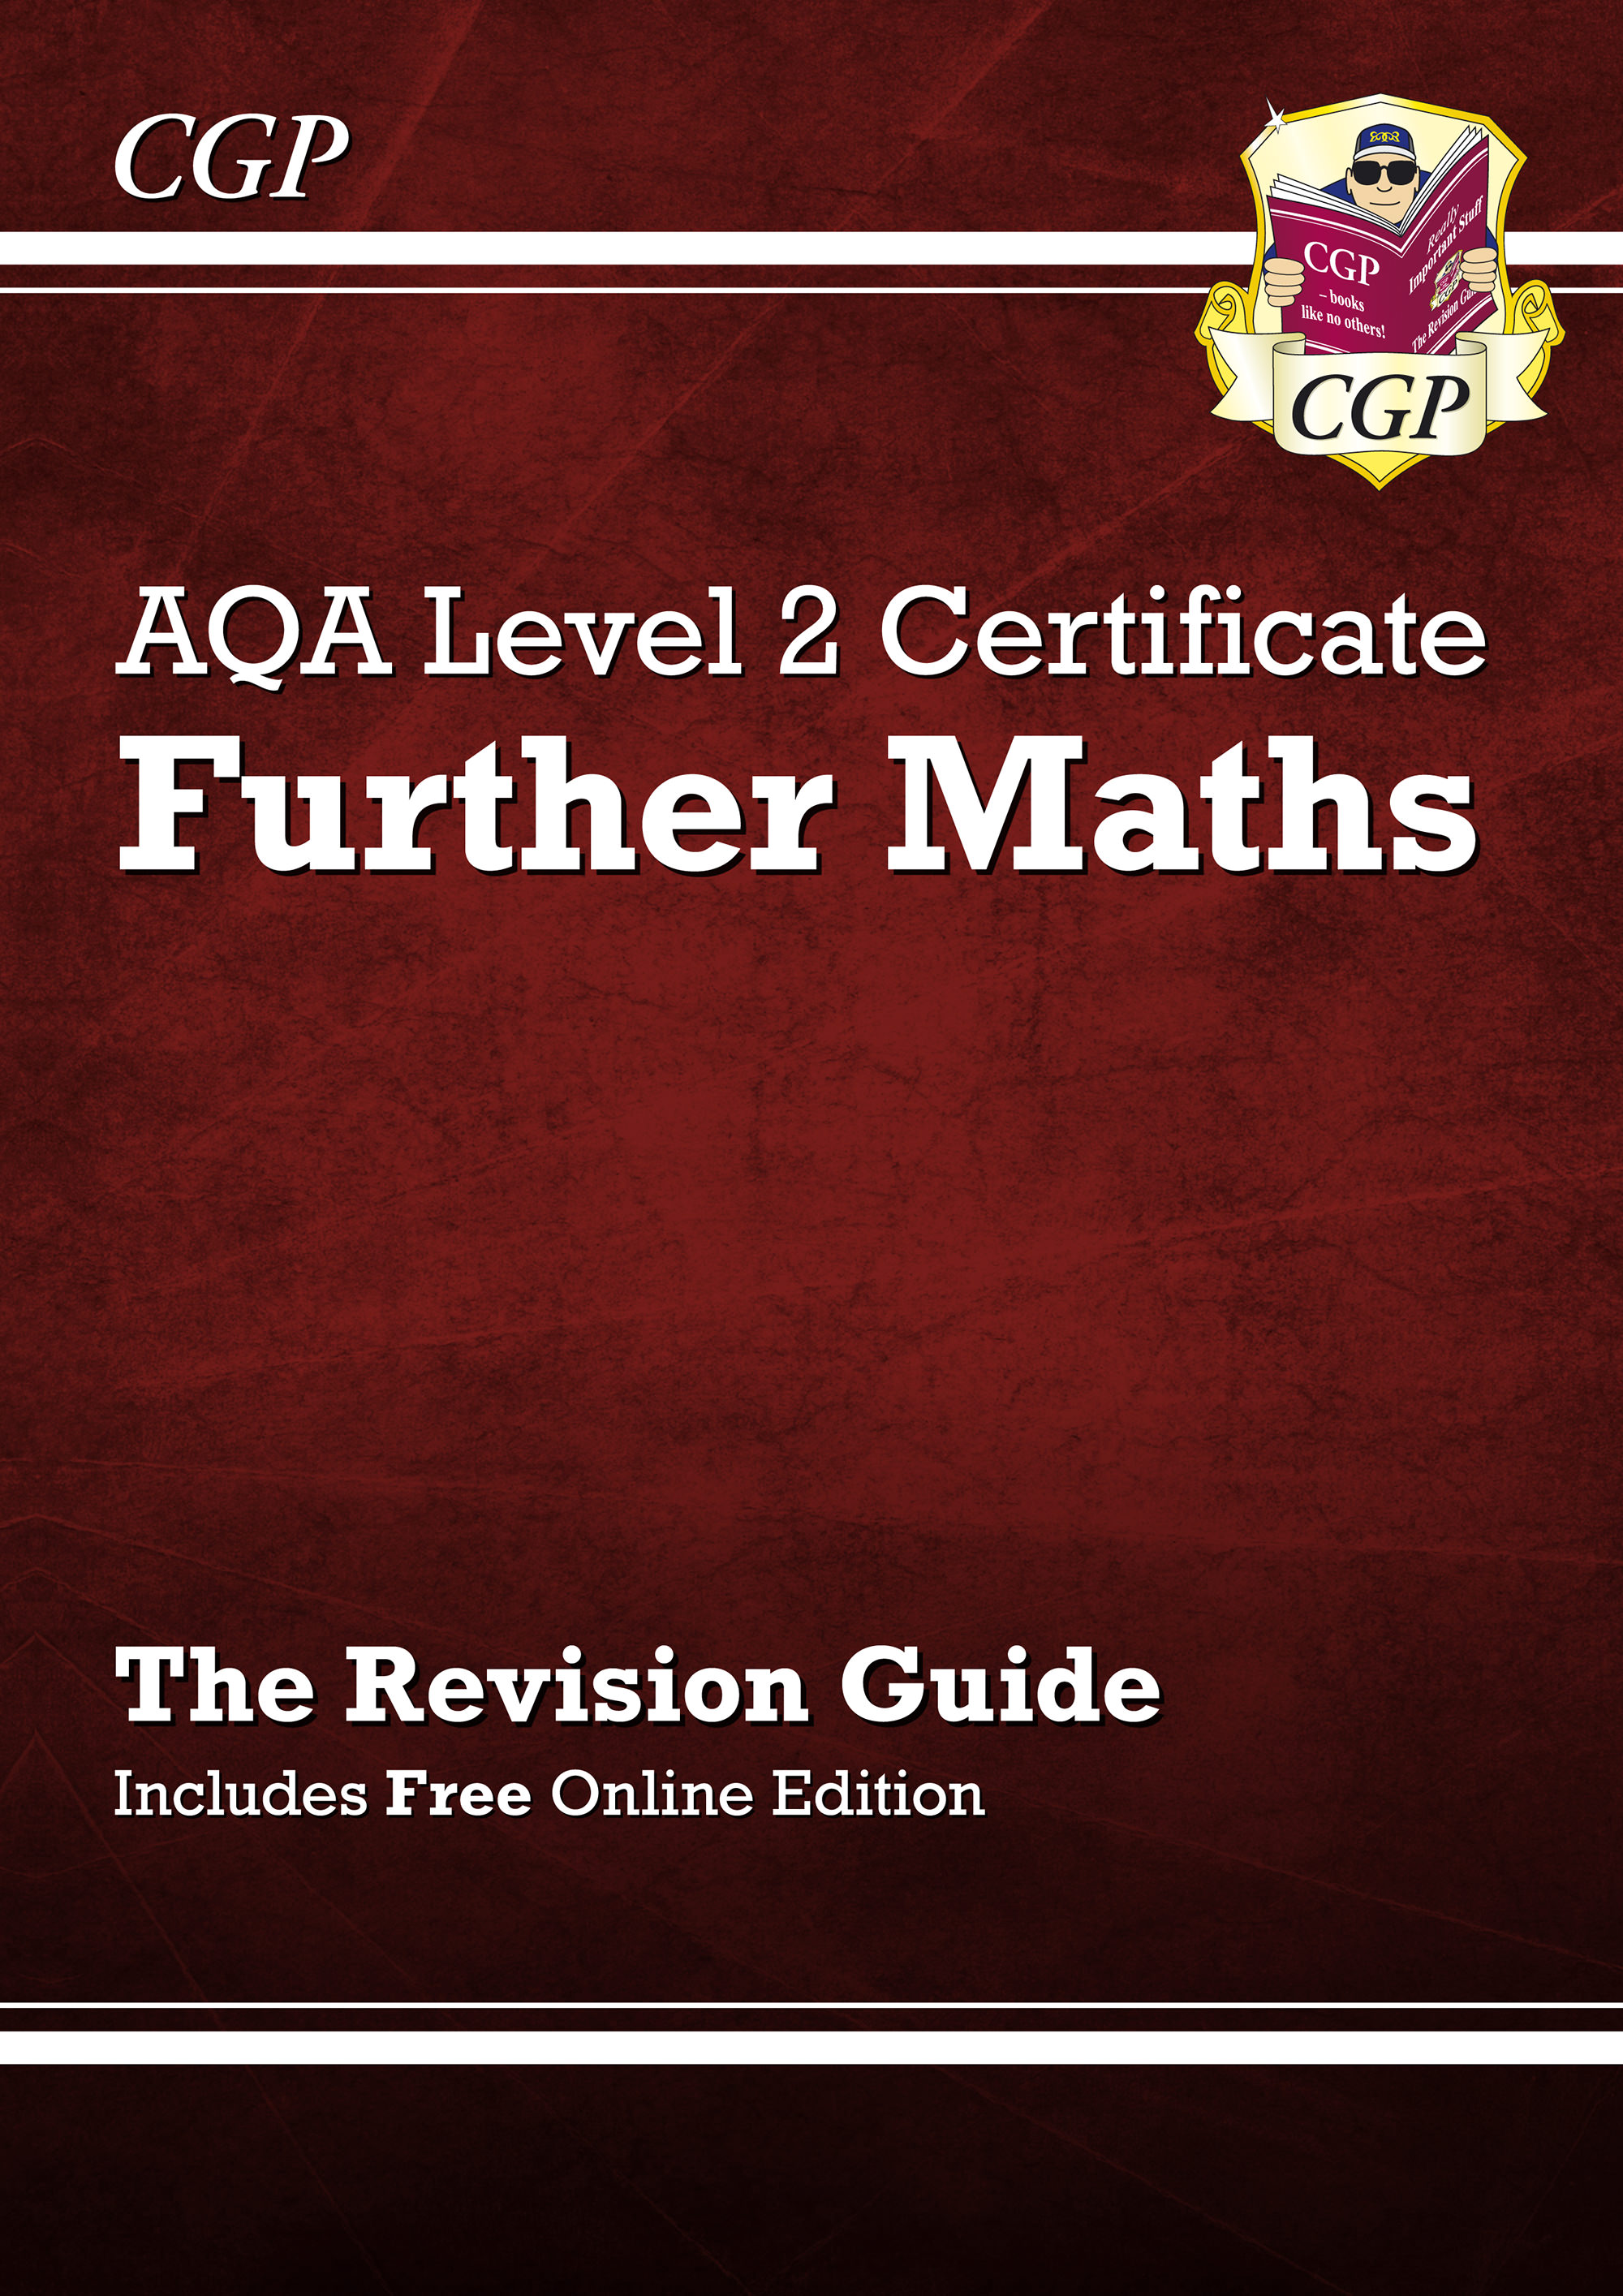 MARI41 - AQA Level 2 Certificate in Further Maths - Revision Guide (with online edition) (A^-C cours